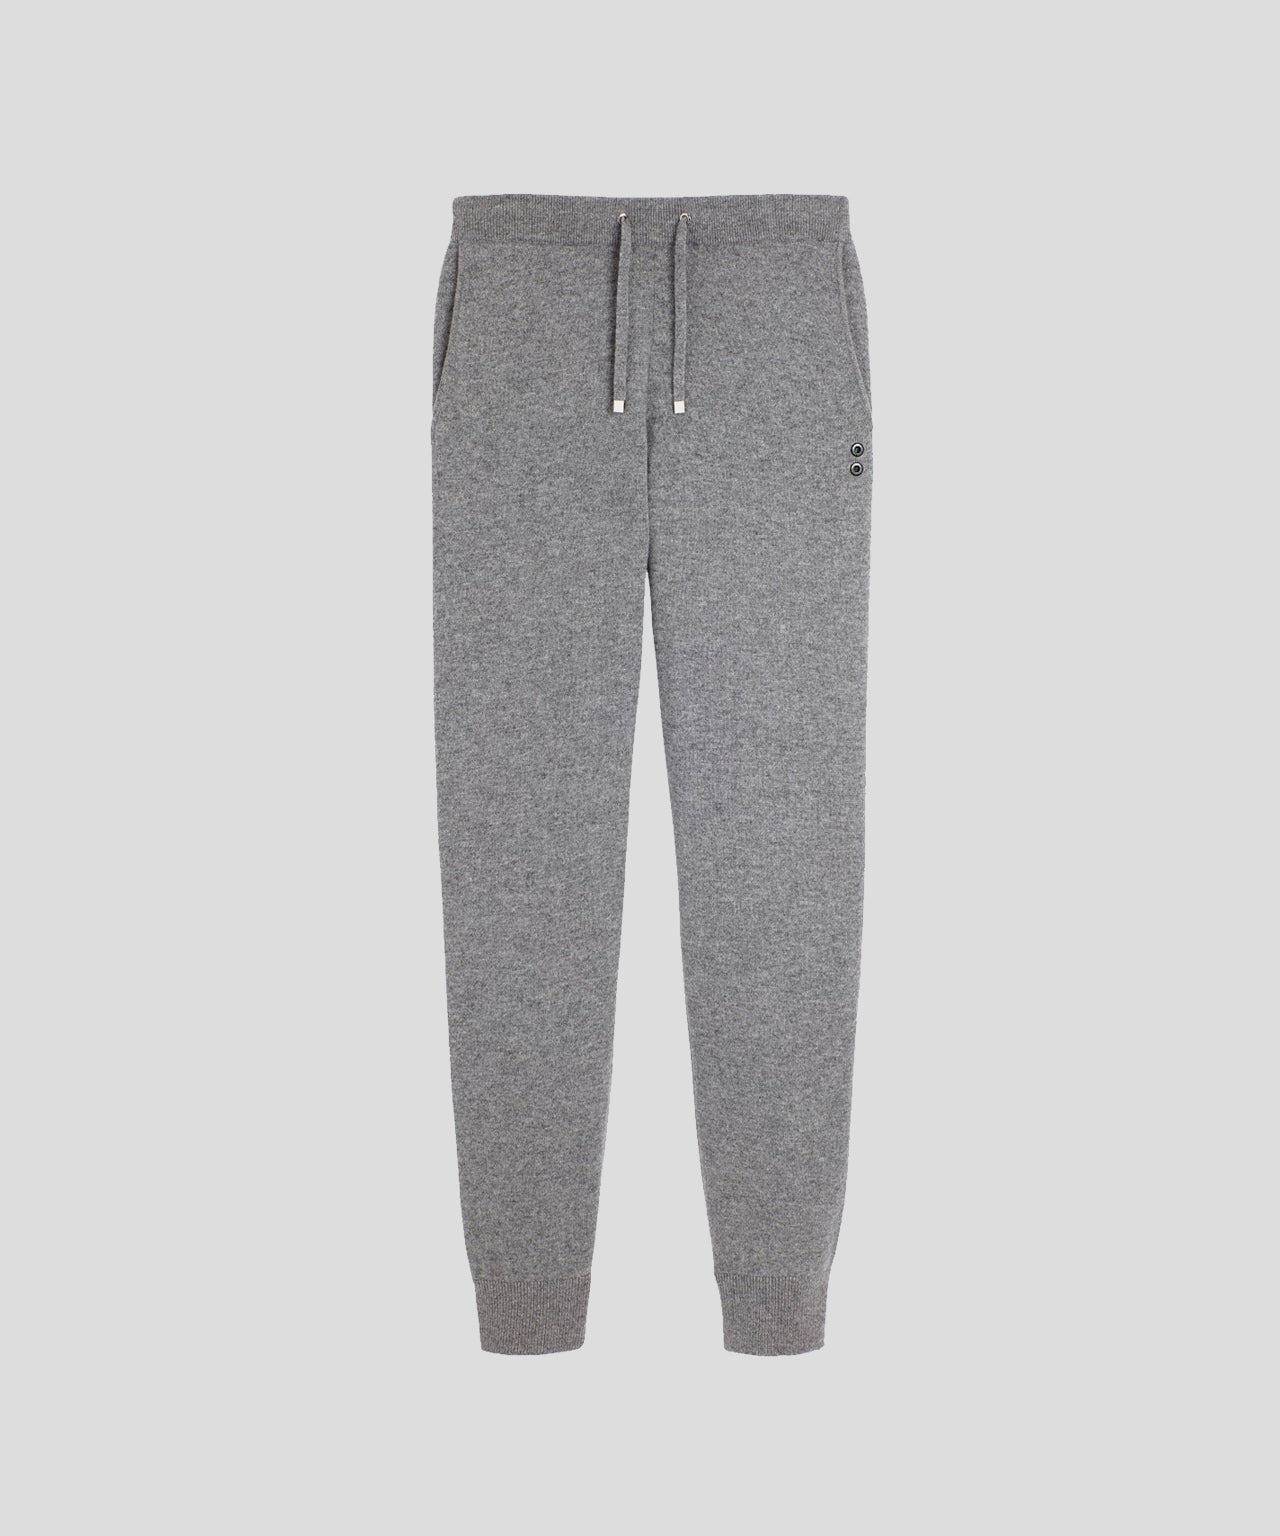 Cashmere Pants - grey melange